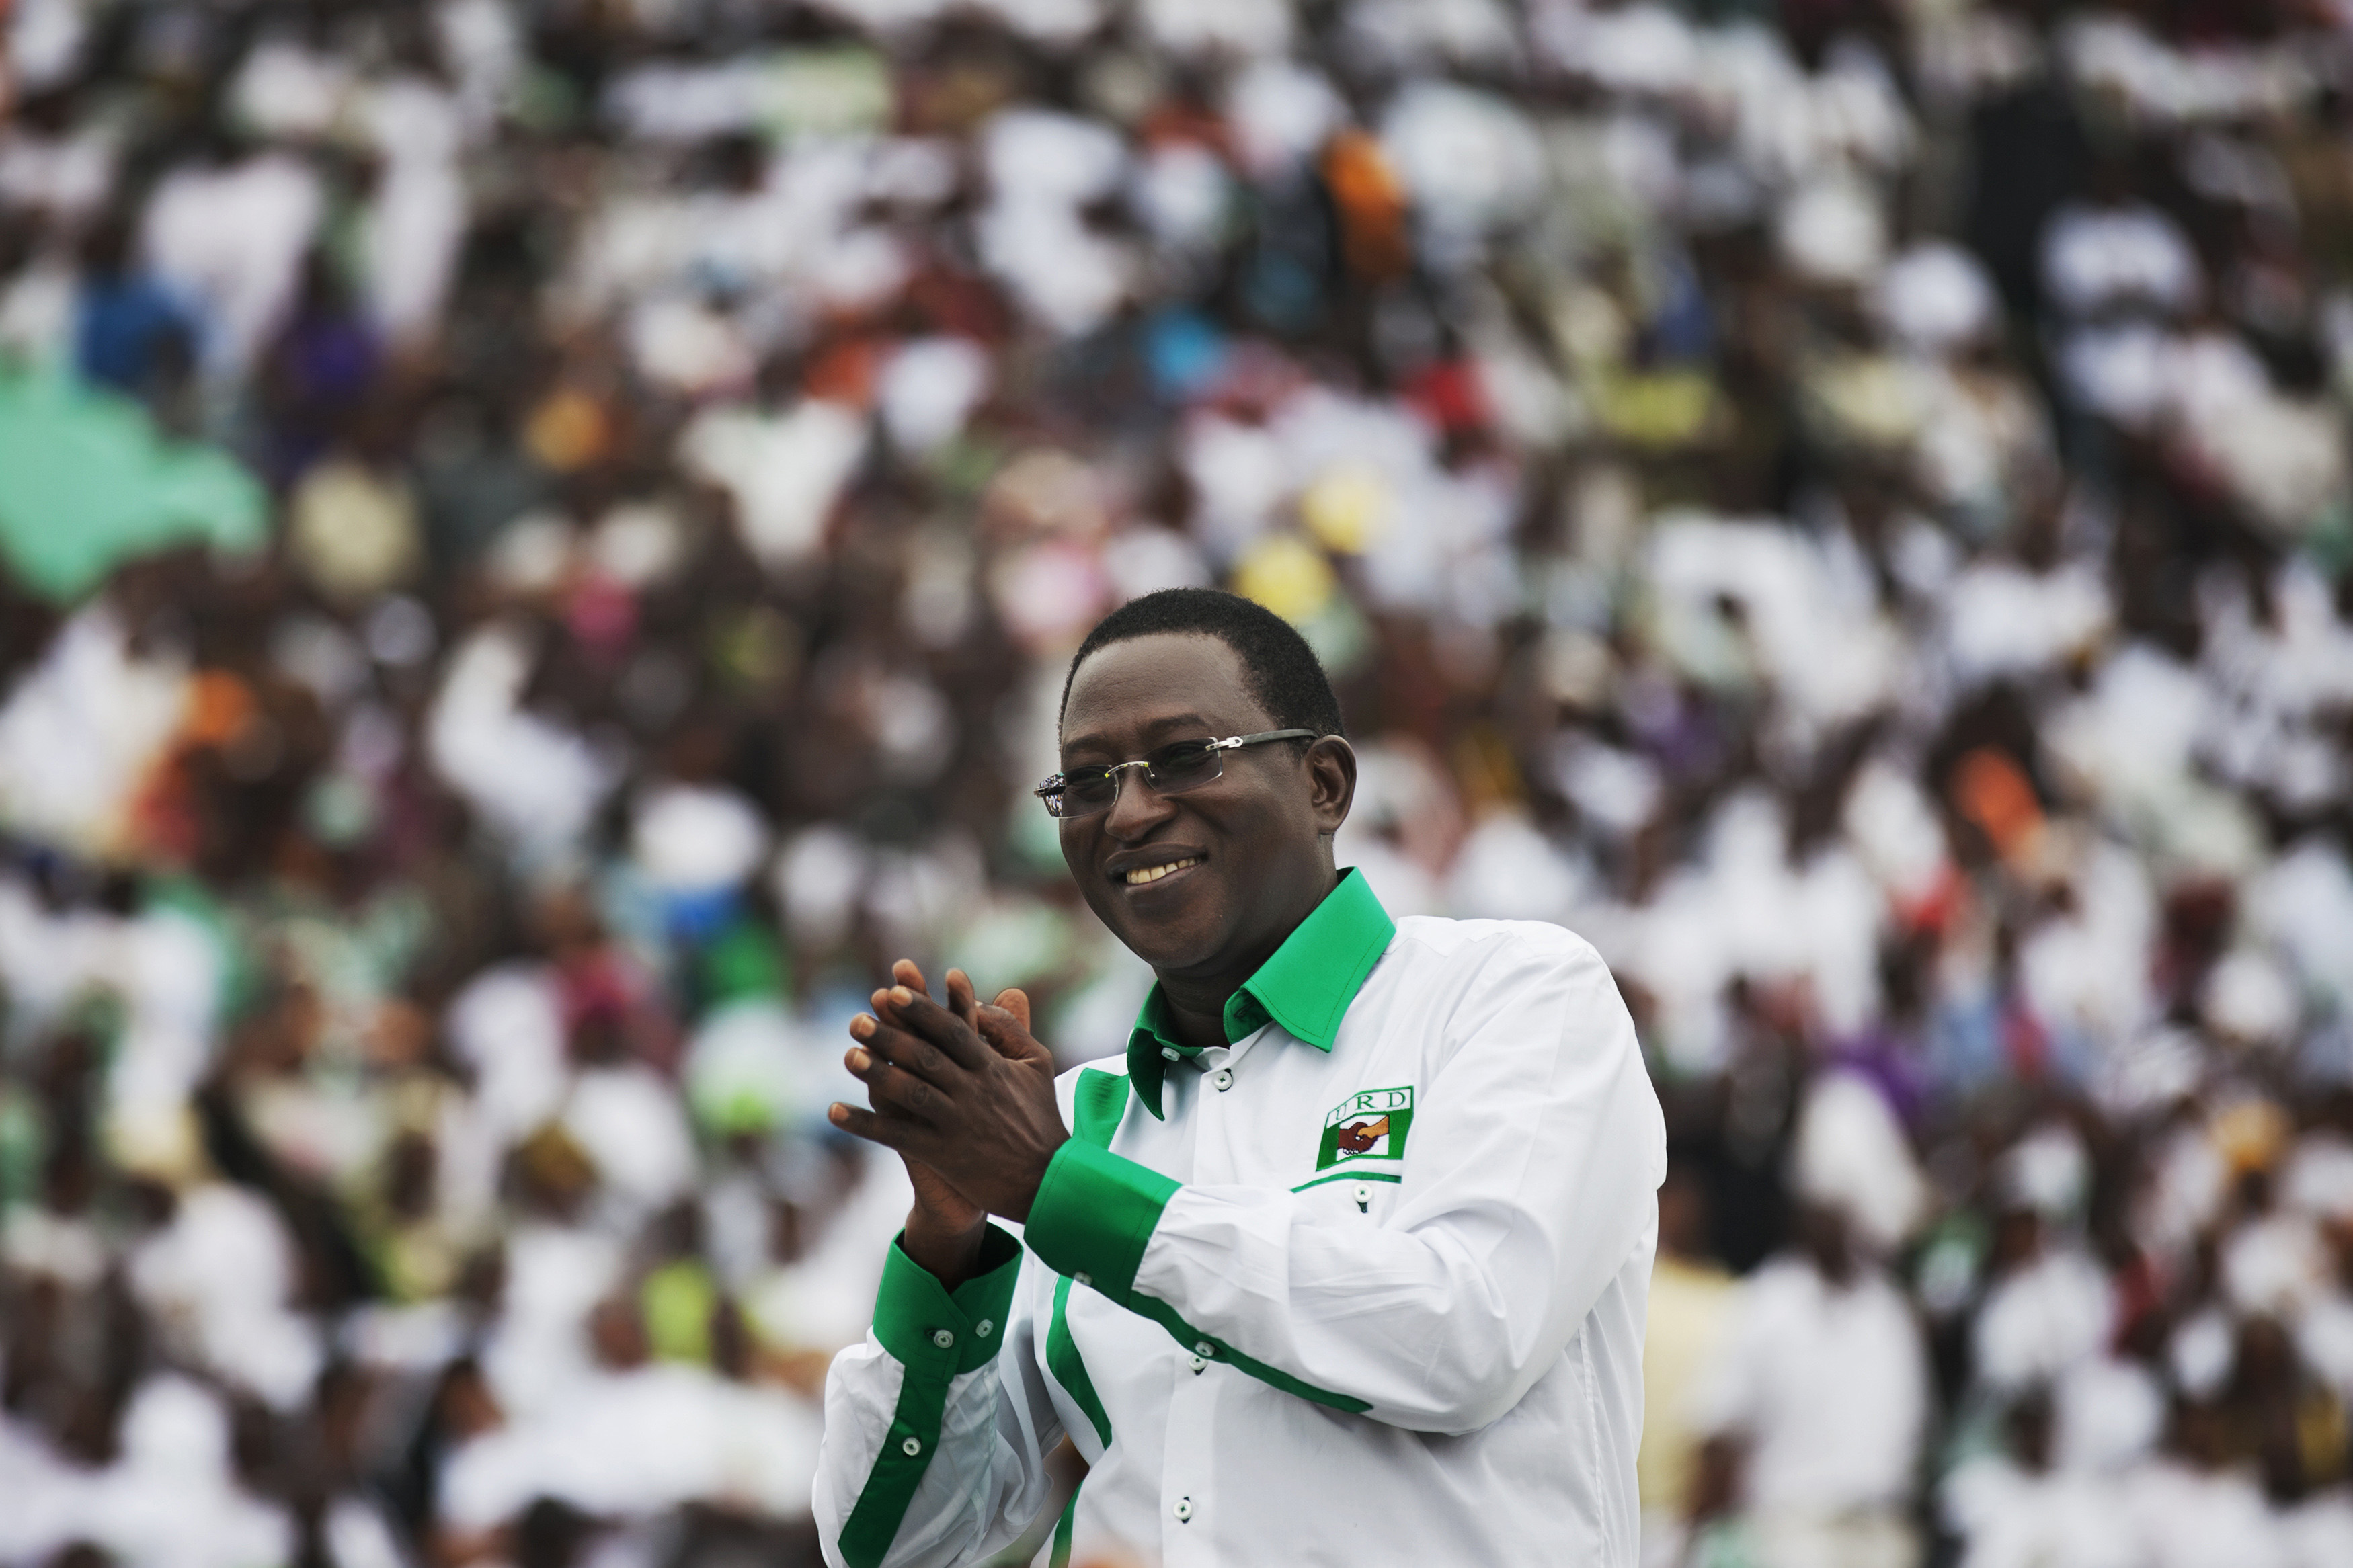 Presidential candidate Soumaila Cisse attends a campaign rally in Bamako, Mali, July 20, 2013.